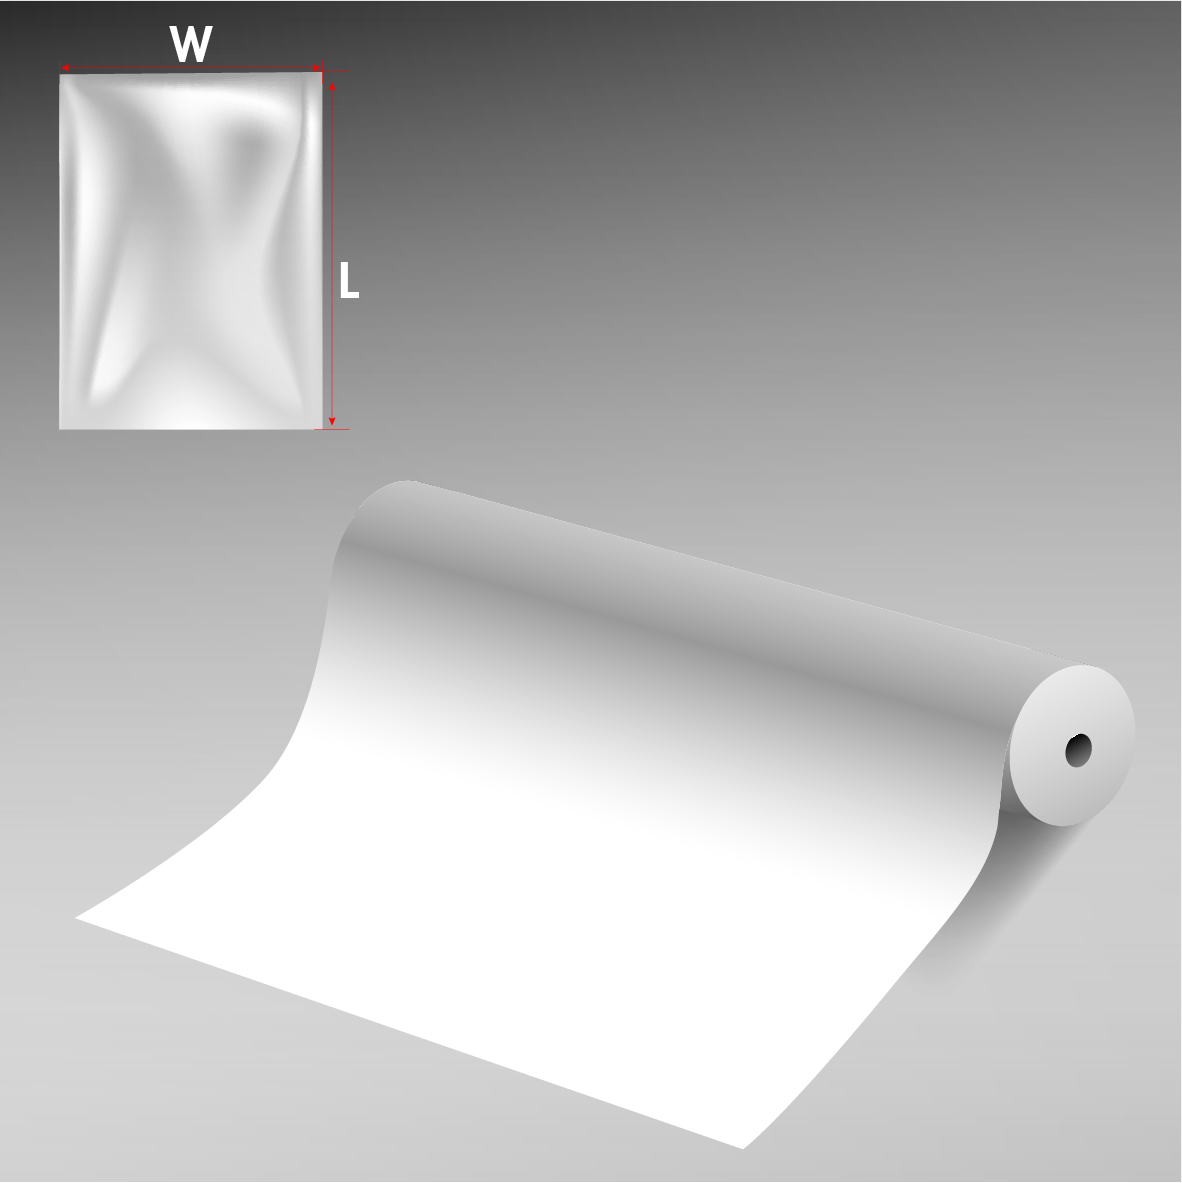 Single Wound Sheeting SWS